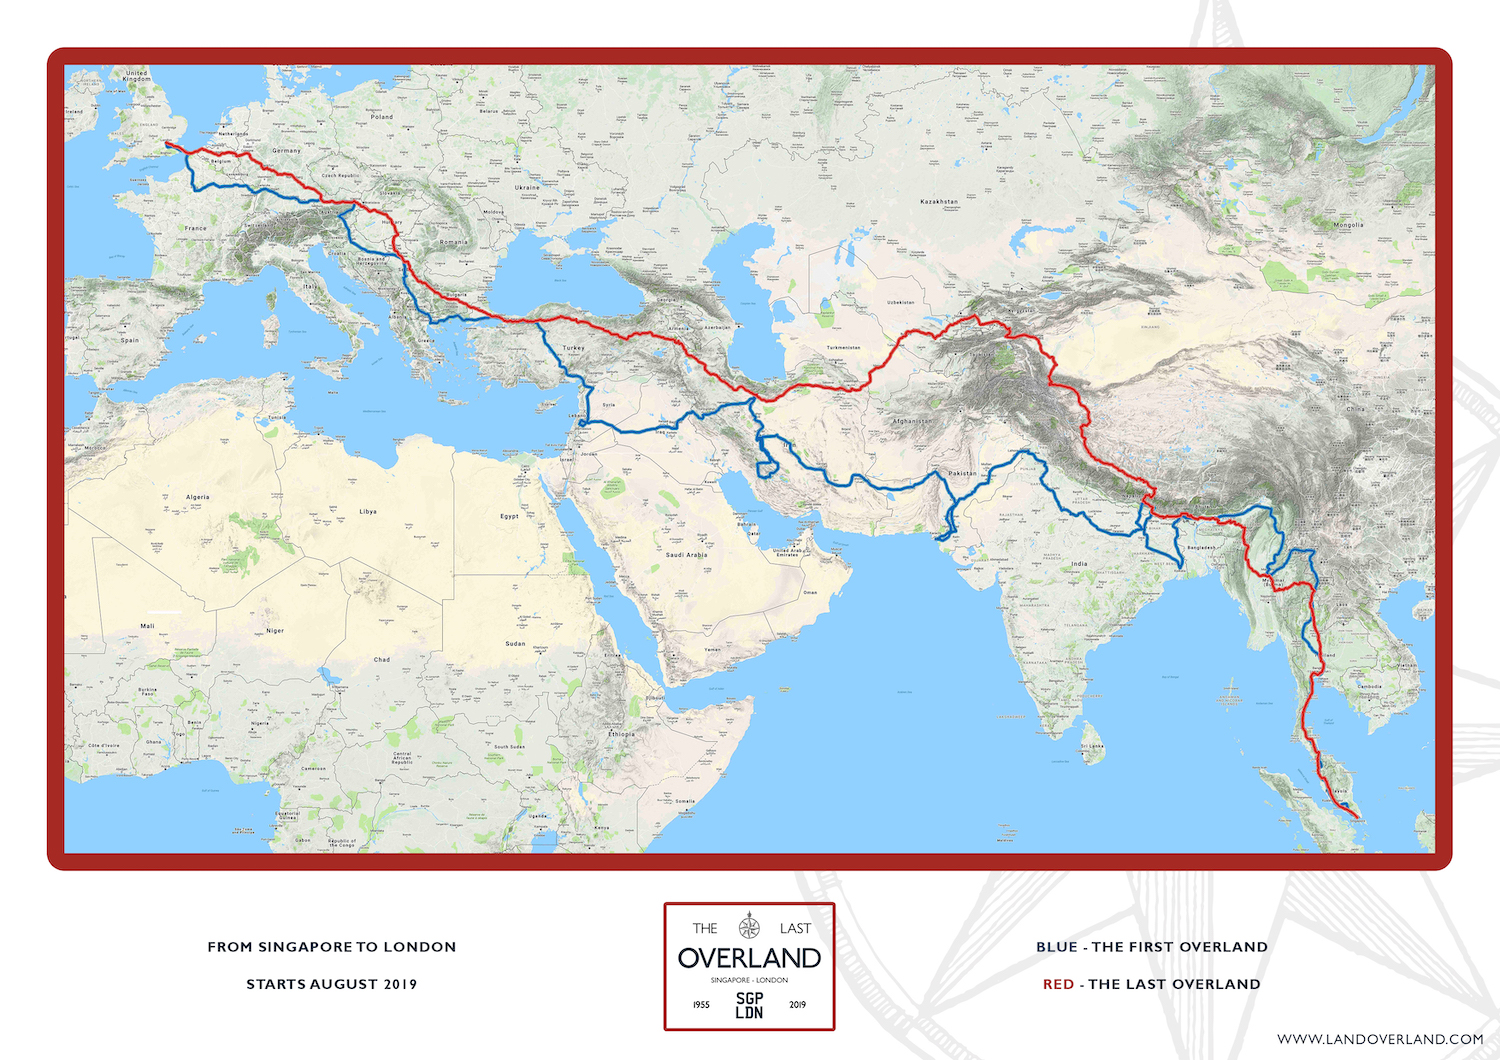 The Last Overland and First Overland Maps